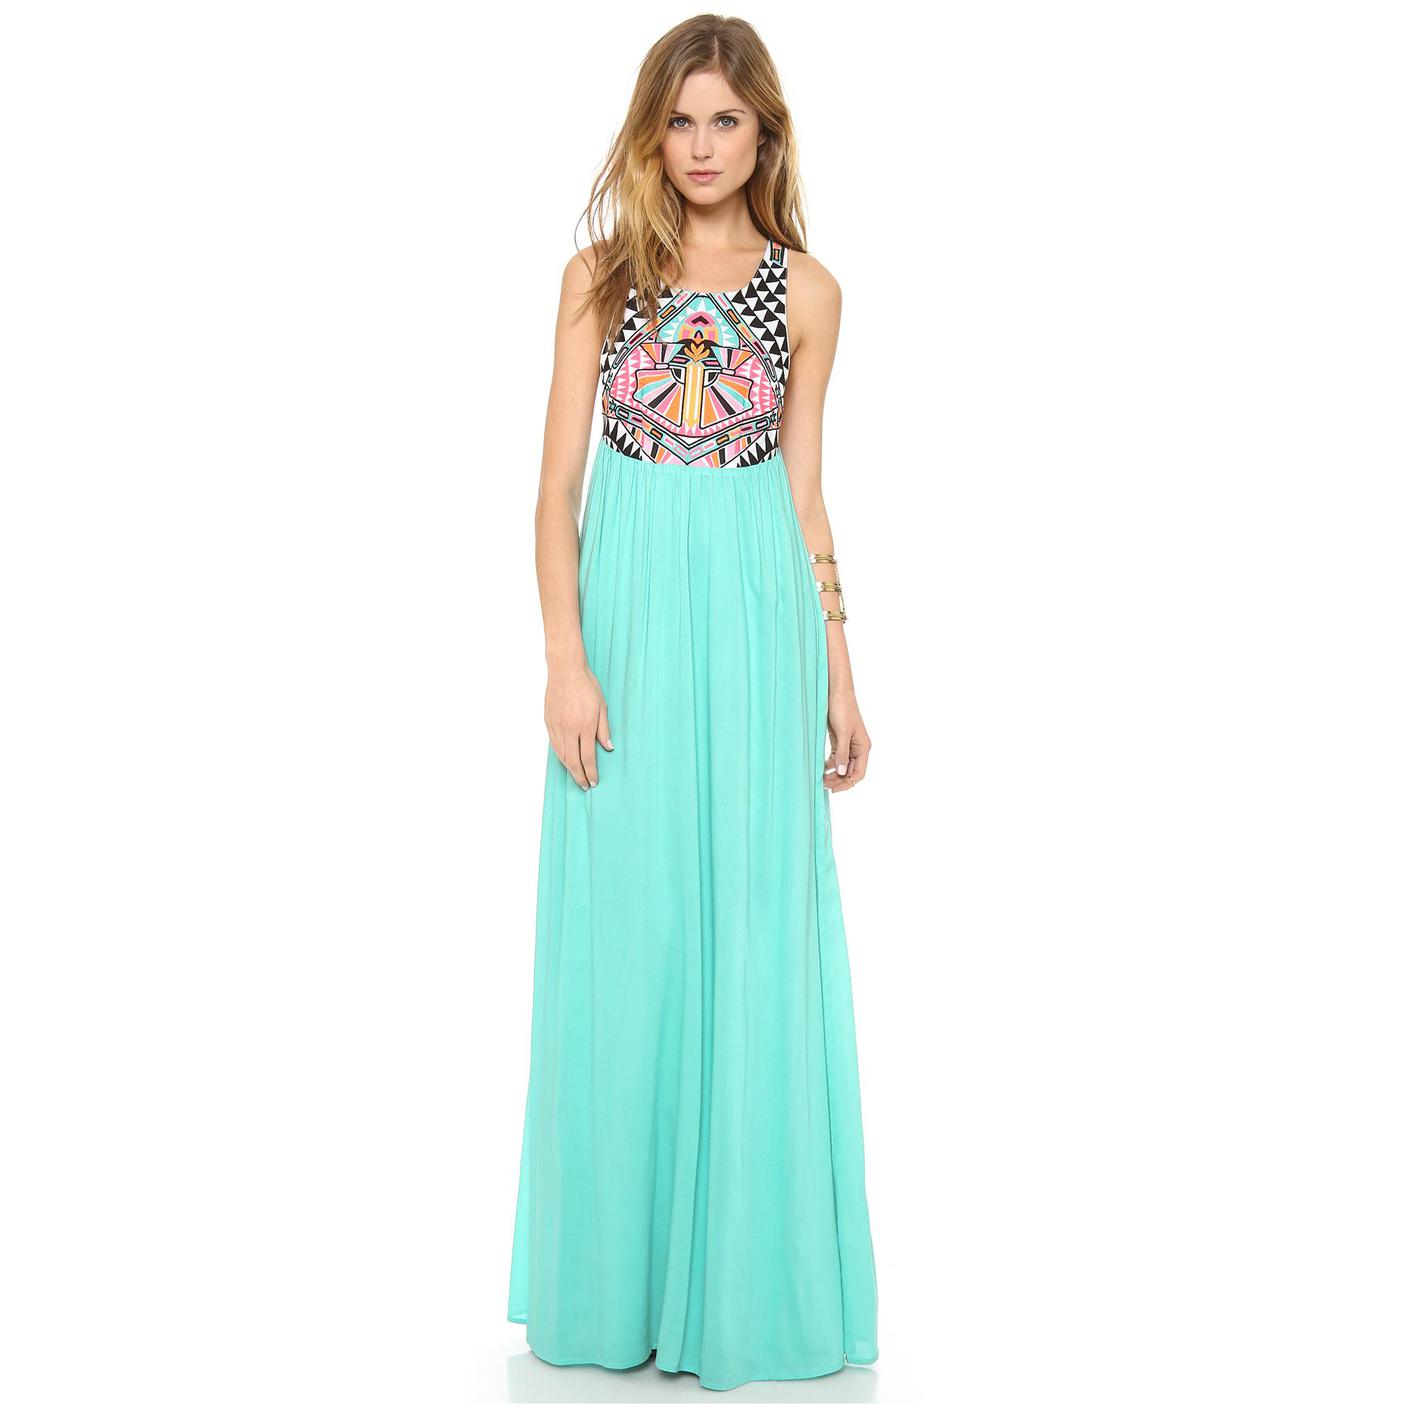 womens maxi dresses with sleeves photo - 1 ksgidbf